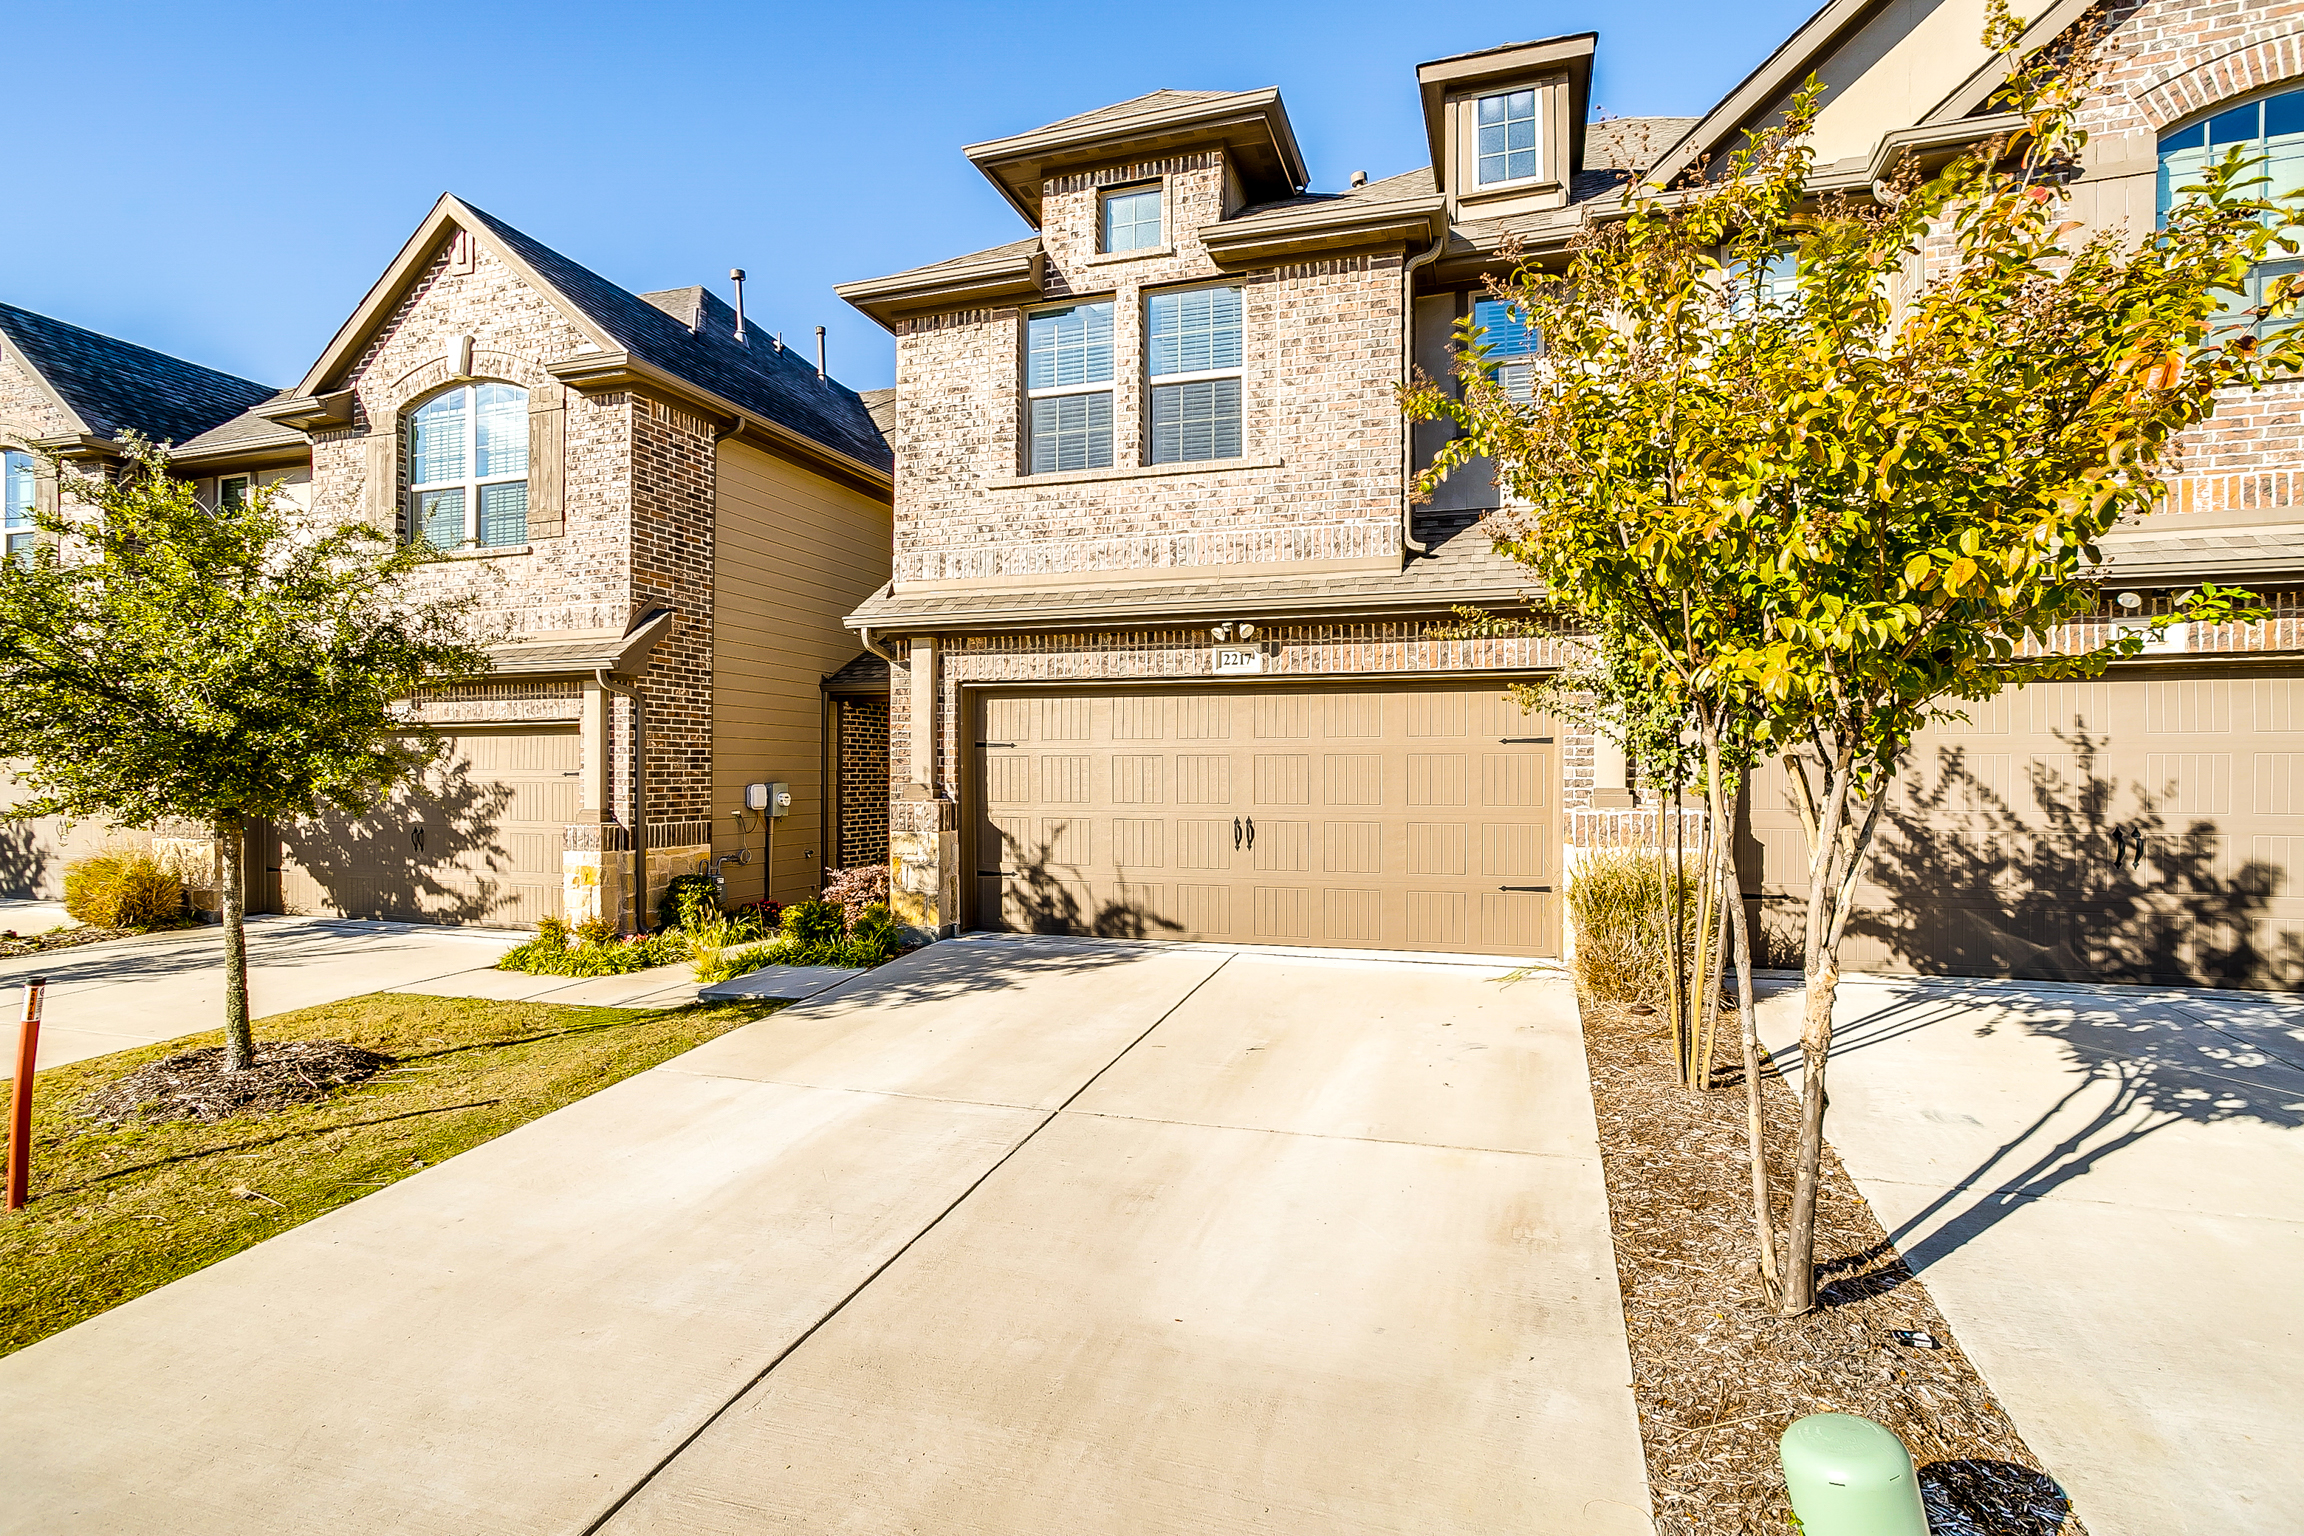 Single family home property manager in Carrollton